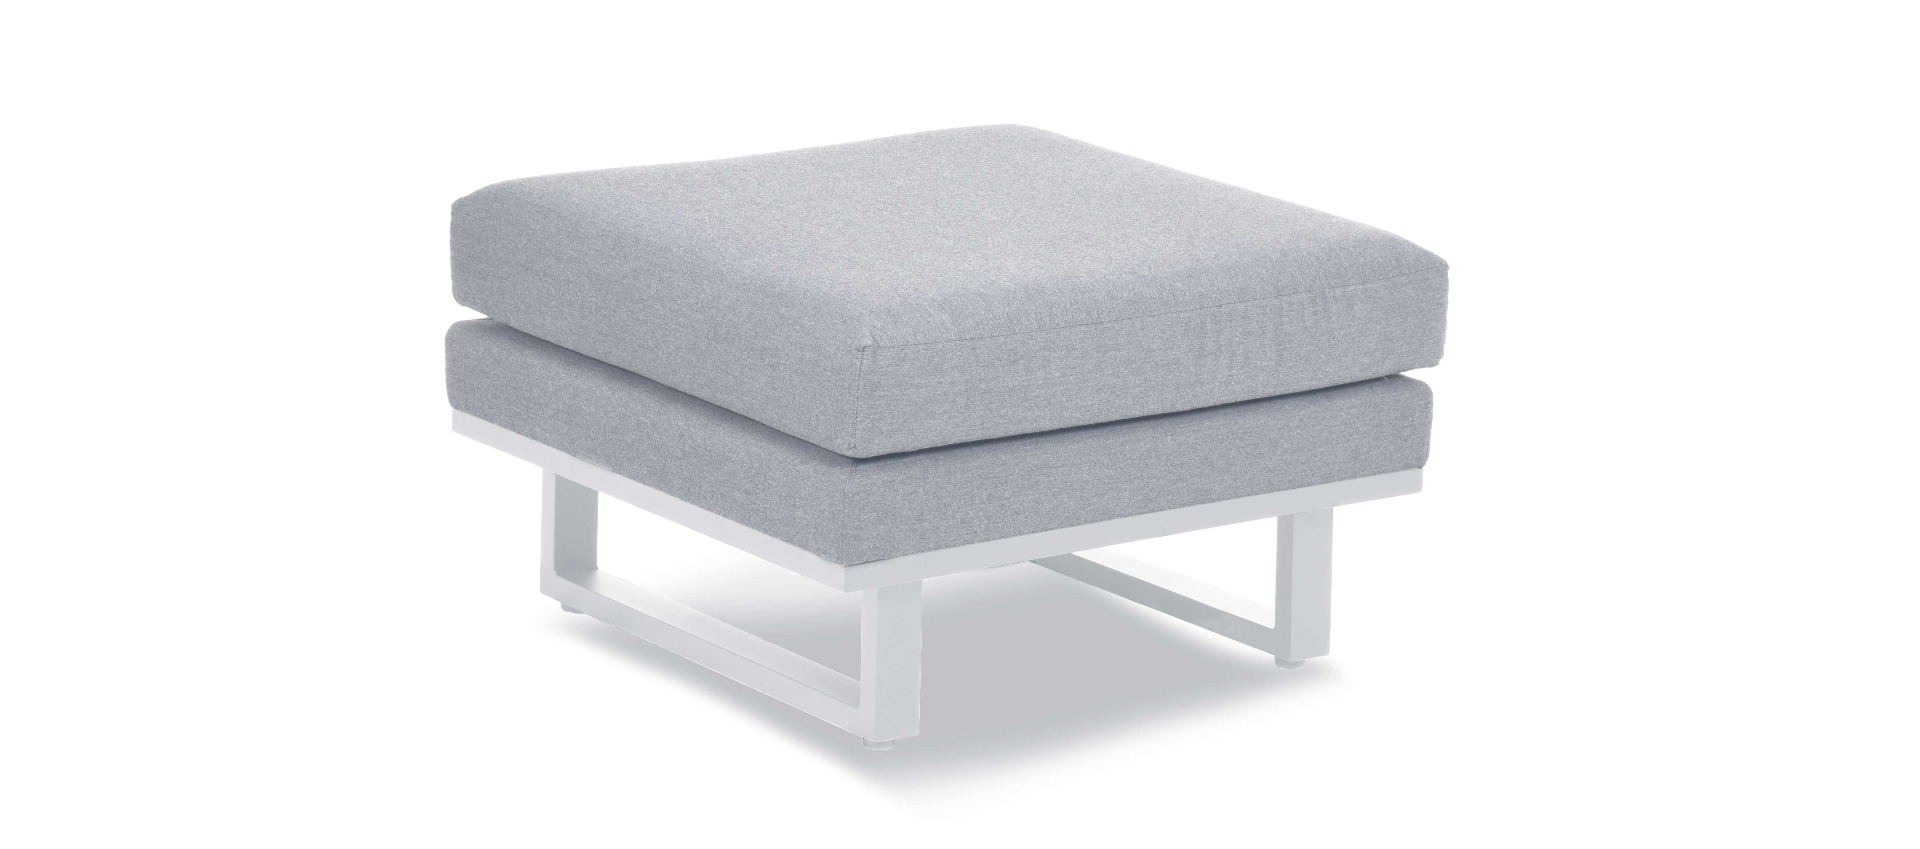 Maze Lounge - Outdoor Fabric Ethos Footstool - Lead Chine